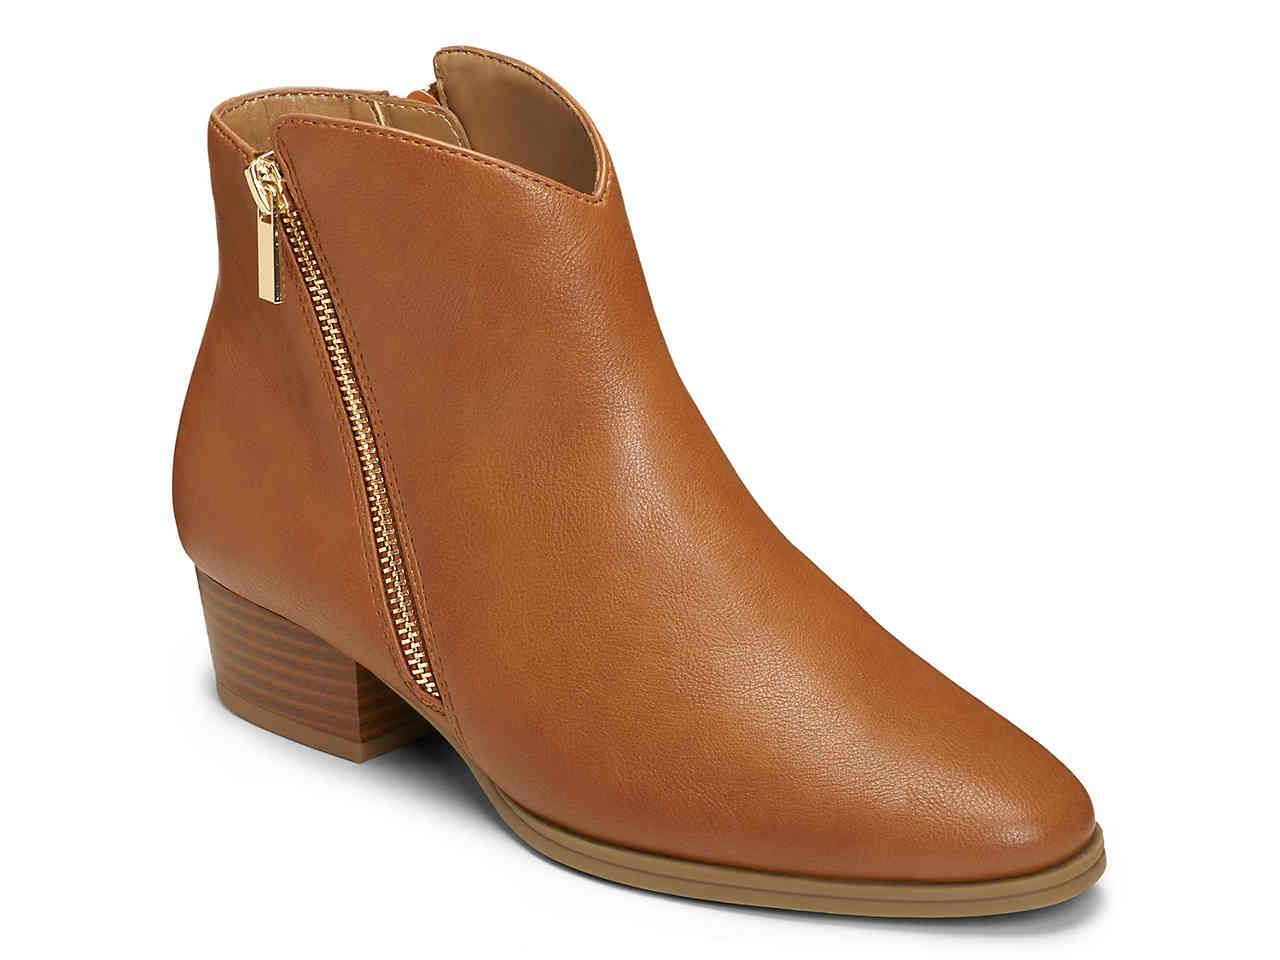 f231a20630b A2 BY AEROSOLES Cross Over Bootie in Cognac, Size 8.5W | DSW | Boots ...